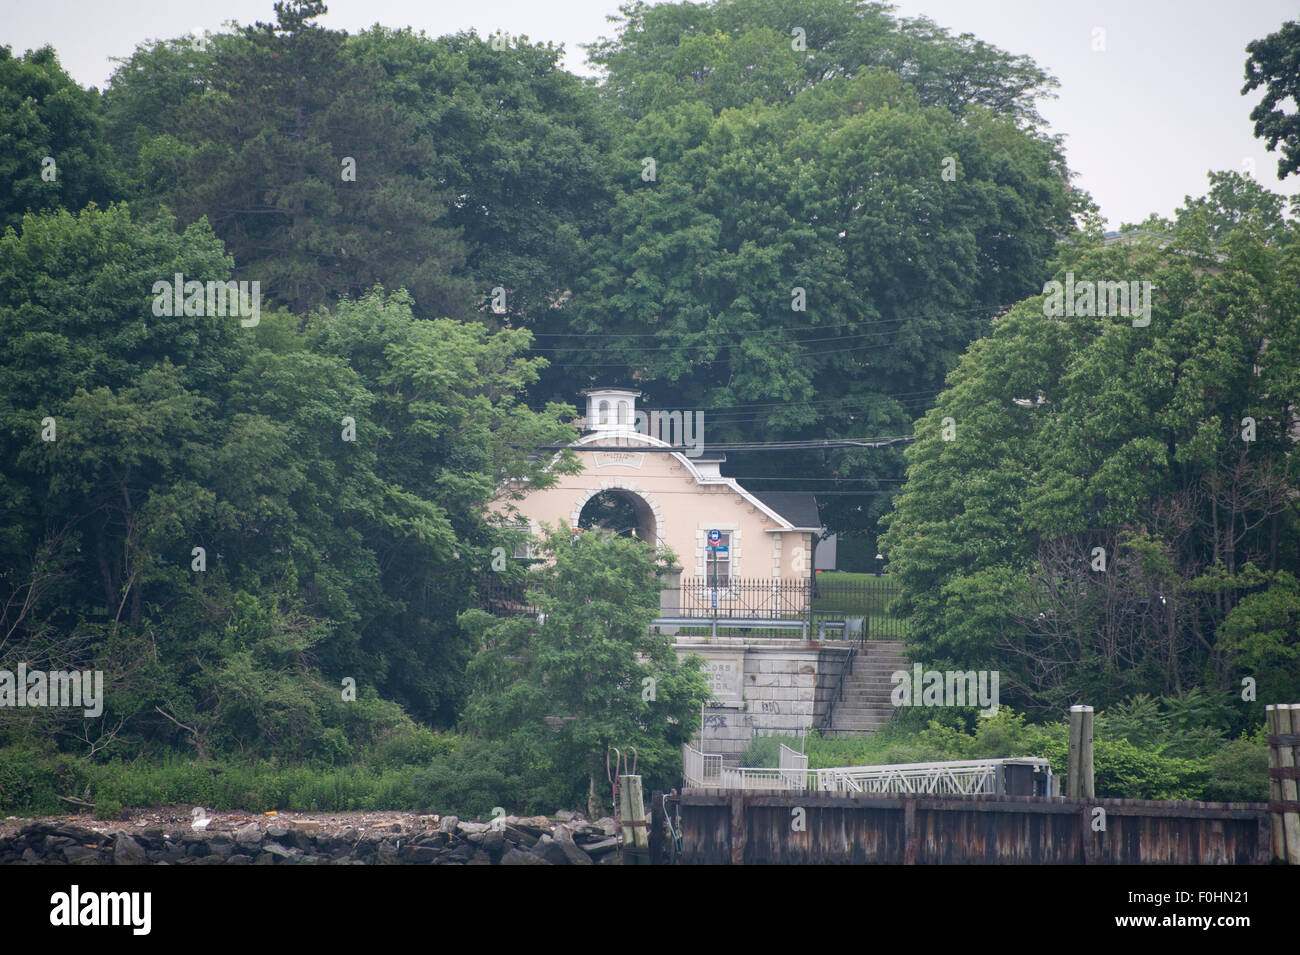 Sailors Snug Harbor, an 83-acre park on Staten Island, was once a home for aged sailors and is now an arts center. - Stock Image